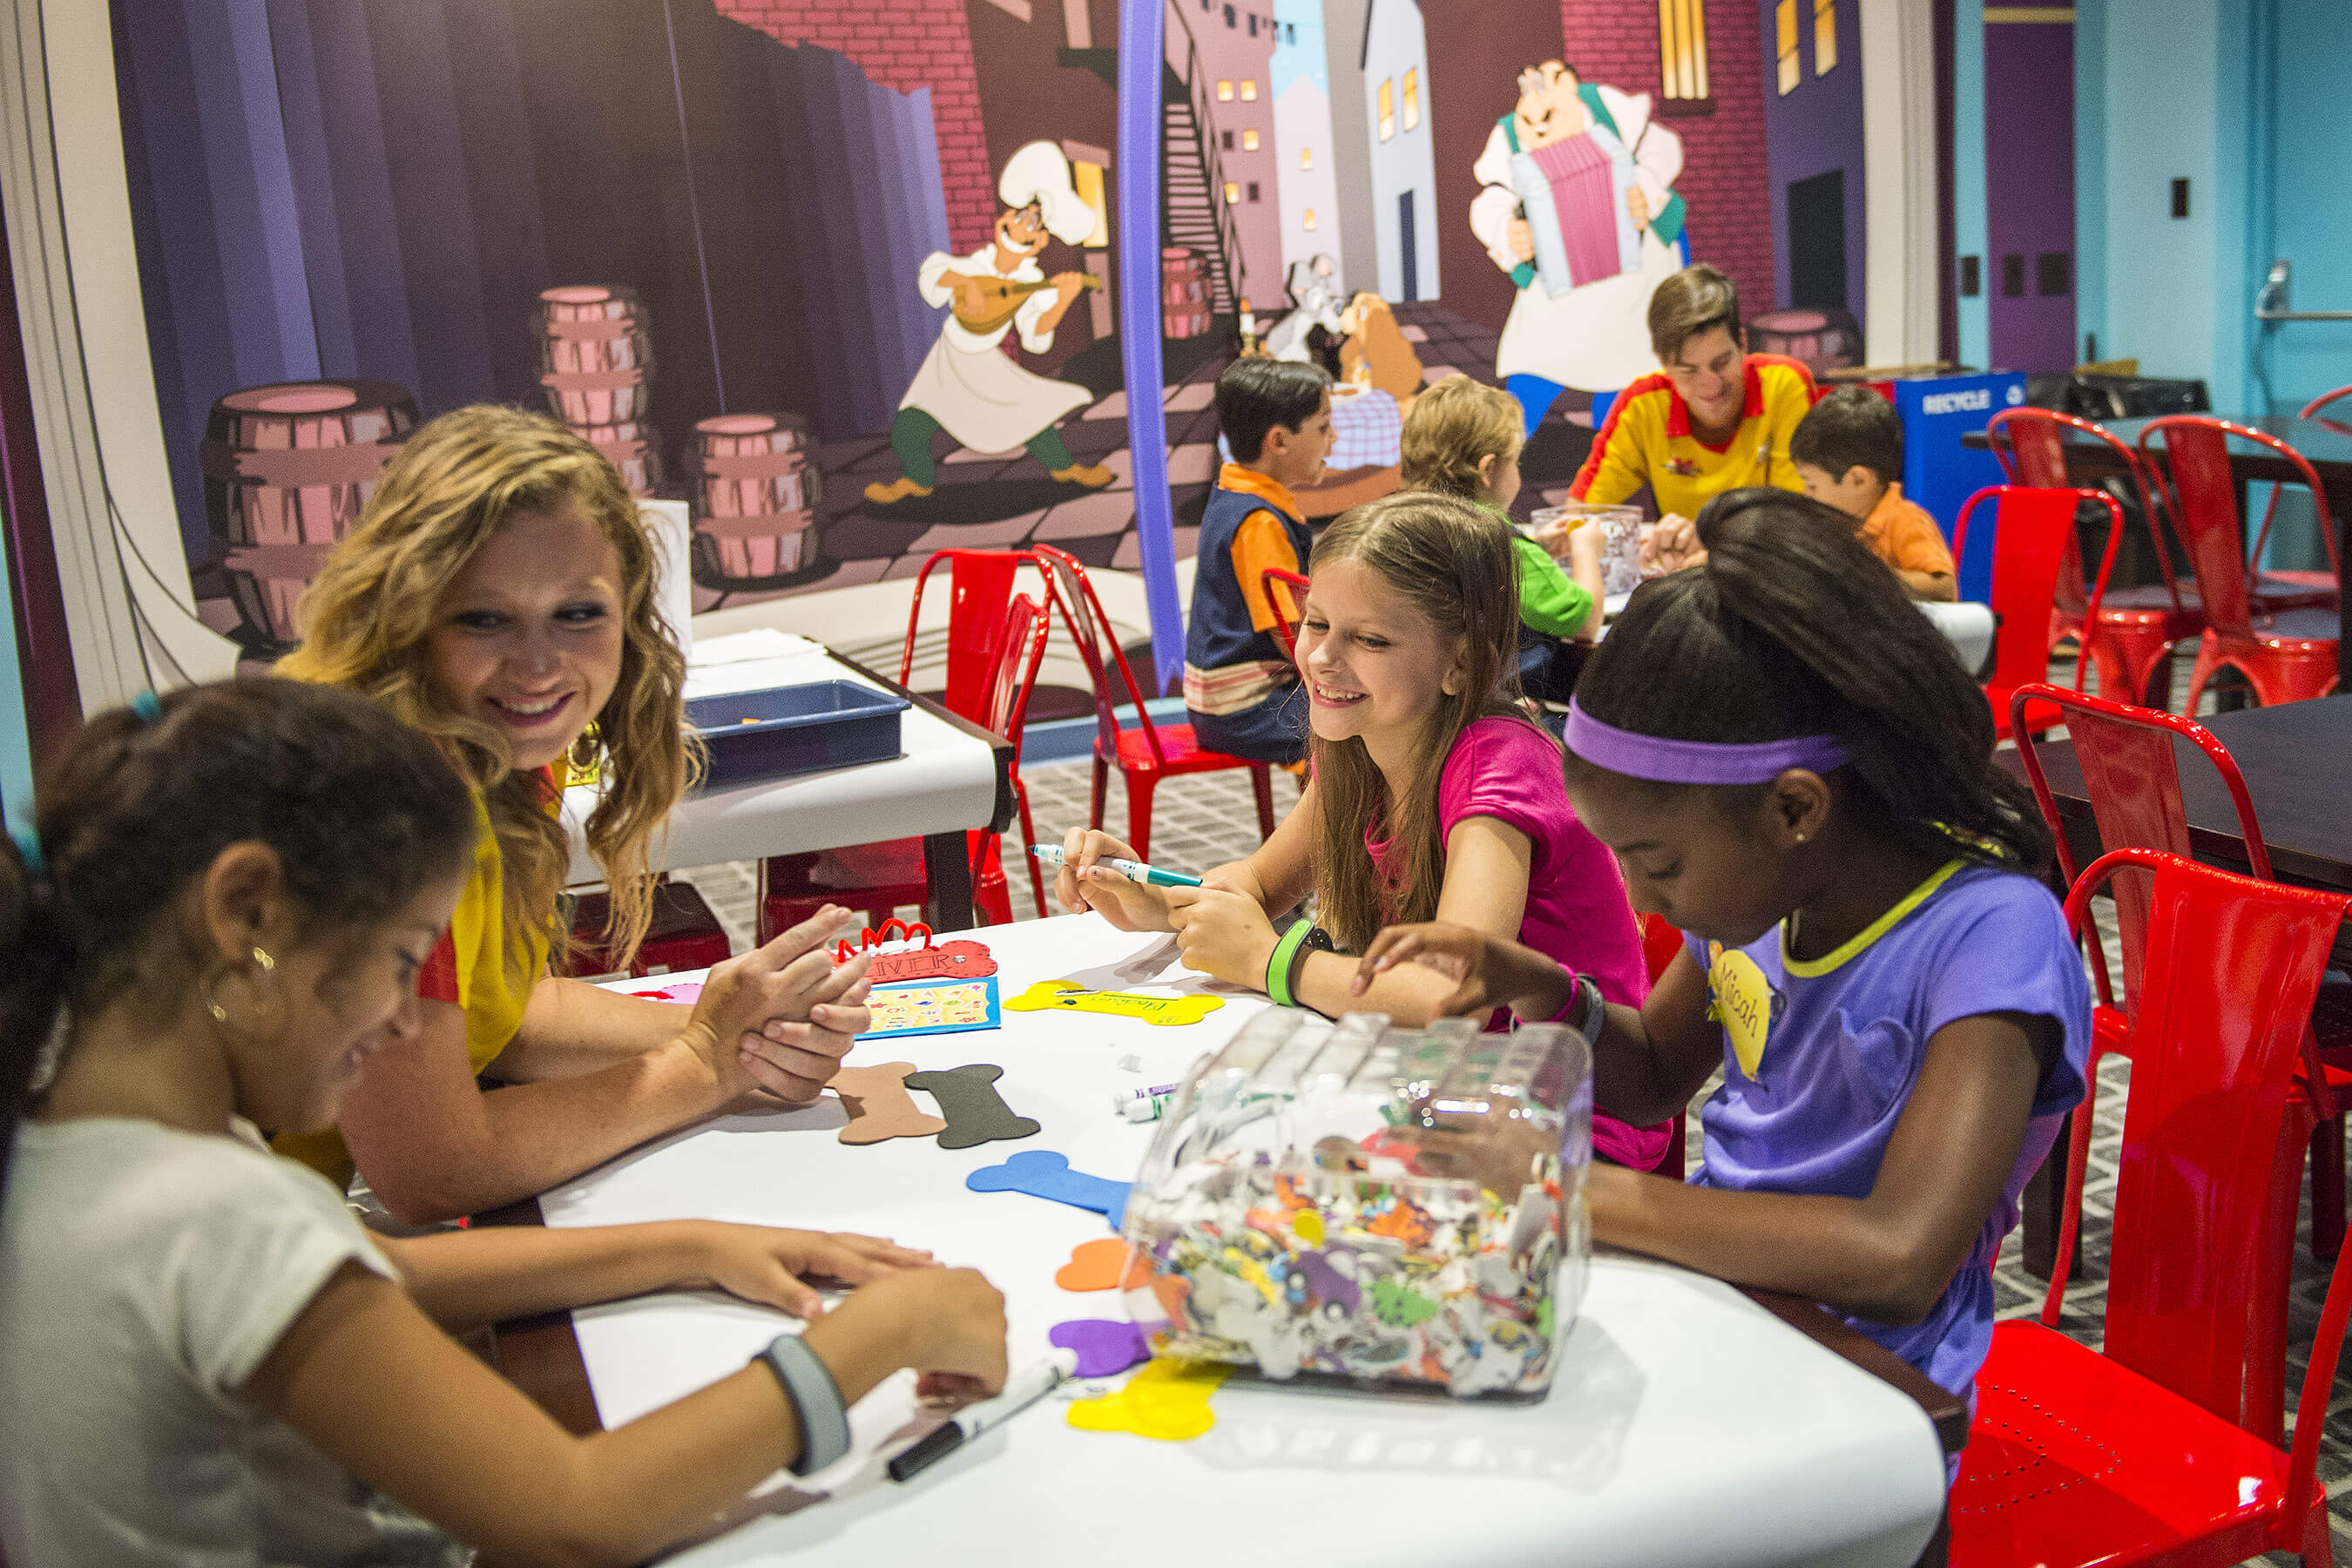 What We Love About Disney World's Child Care Services